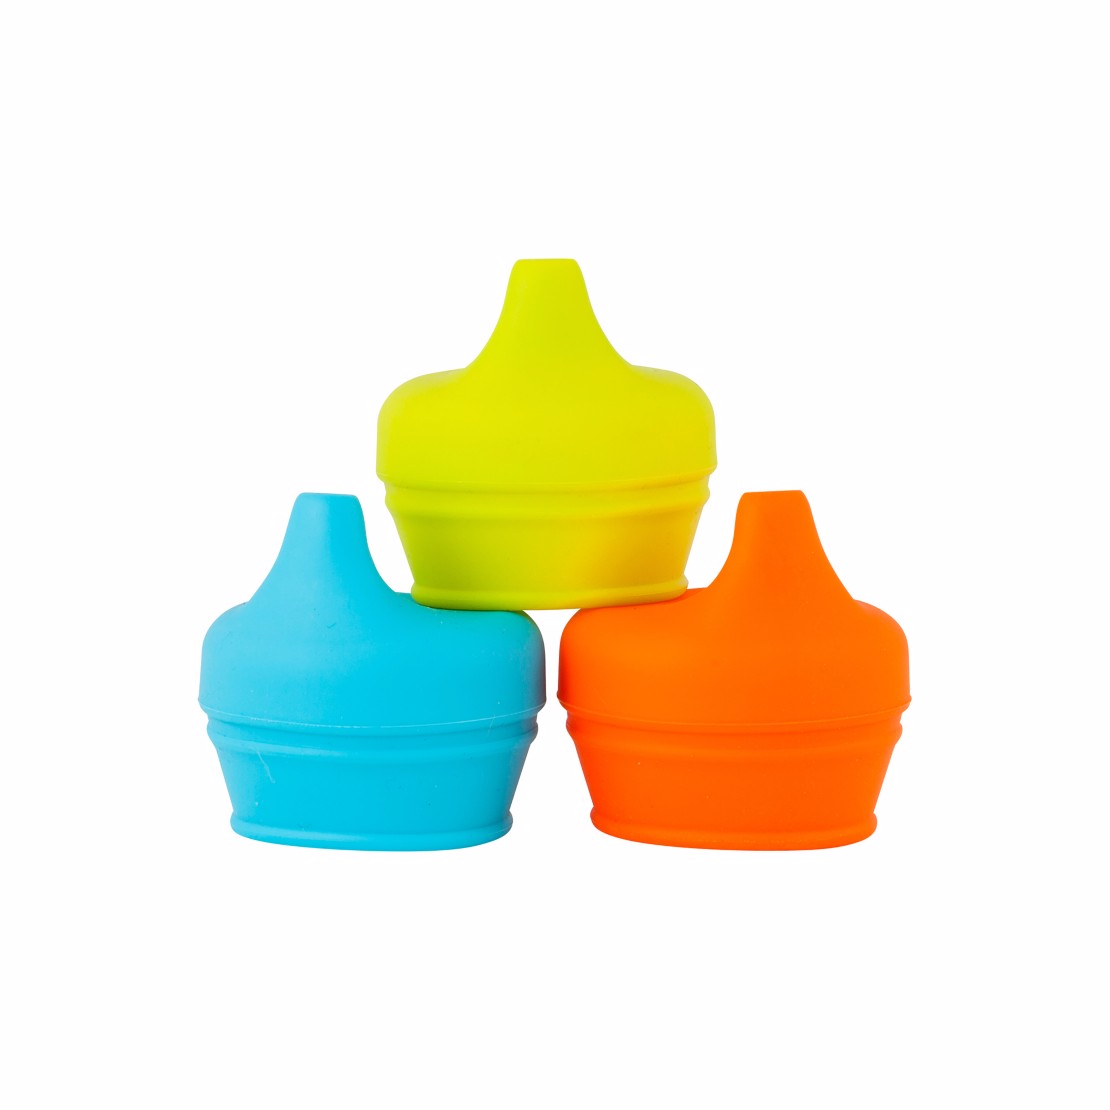 Avent Sippy Cup Tops : Silicone sippy lids for babies hyperion